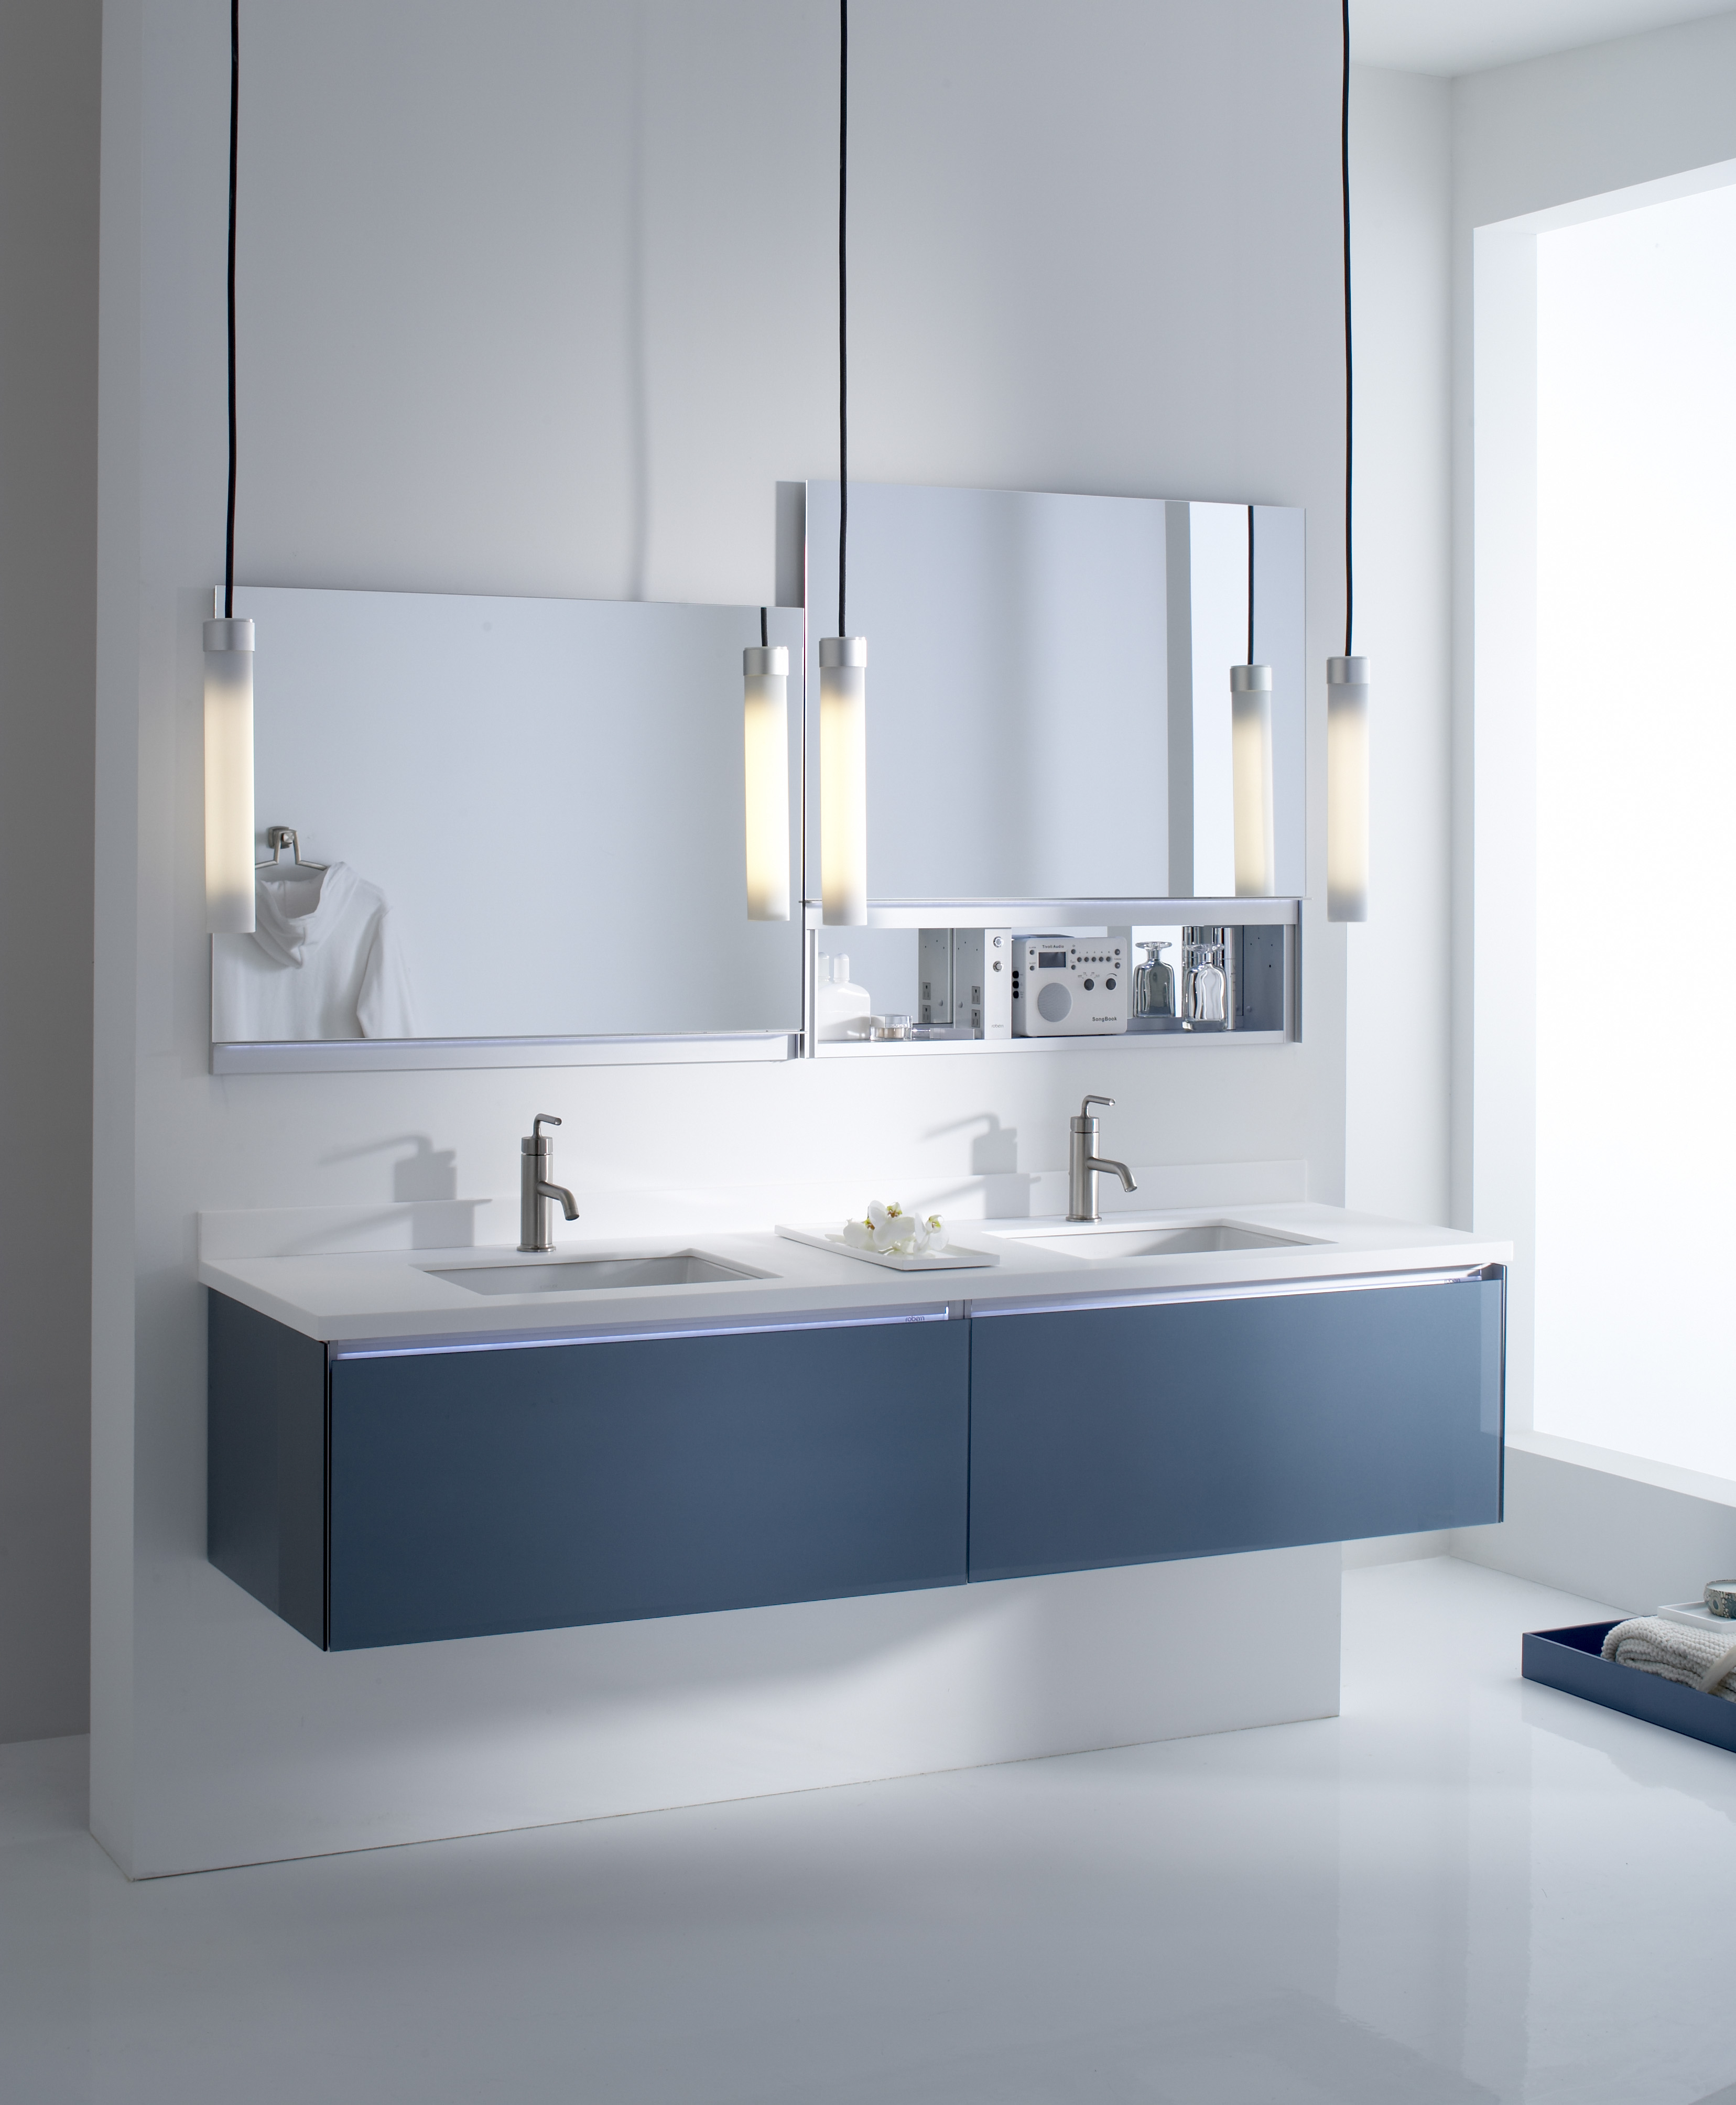 The Robern 36-inch wall-mount vanity by Kohler